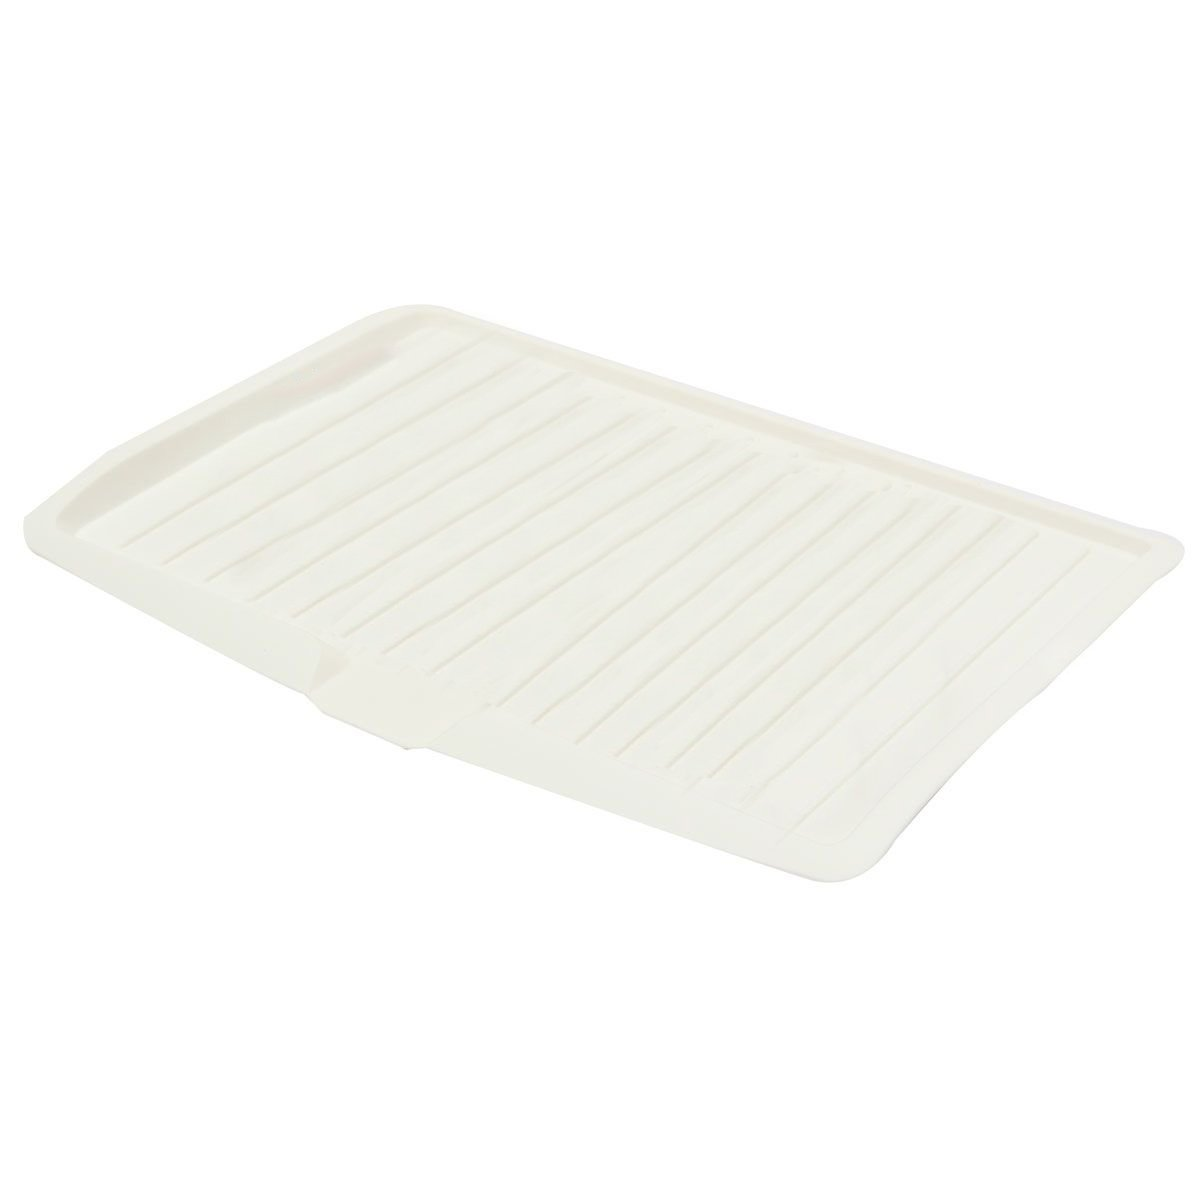 Amazon.com: Plastic Dish Drainer Drip Tray Plate Cutlery Rack Kitchen Sink Holder Material Environmental And Safe Durable Practical Convenient Perfect For ...